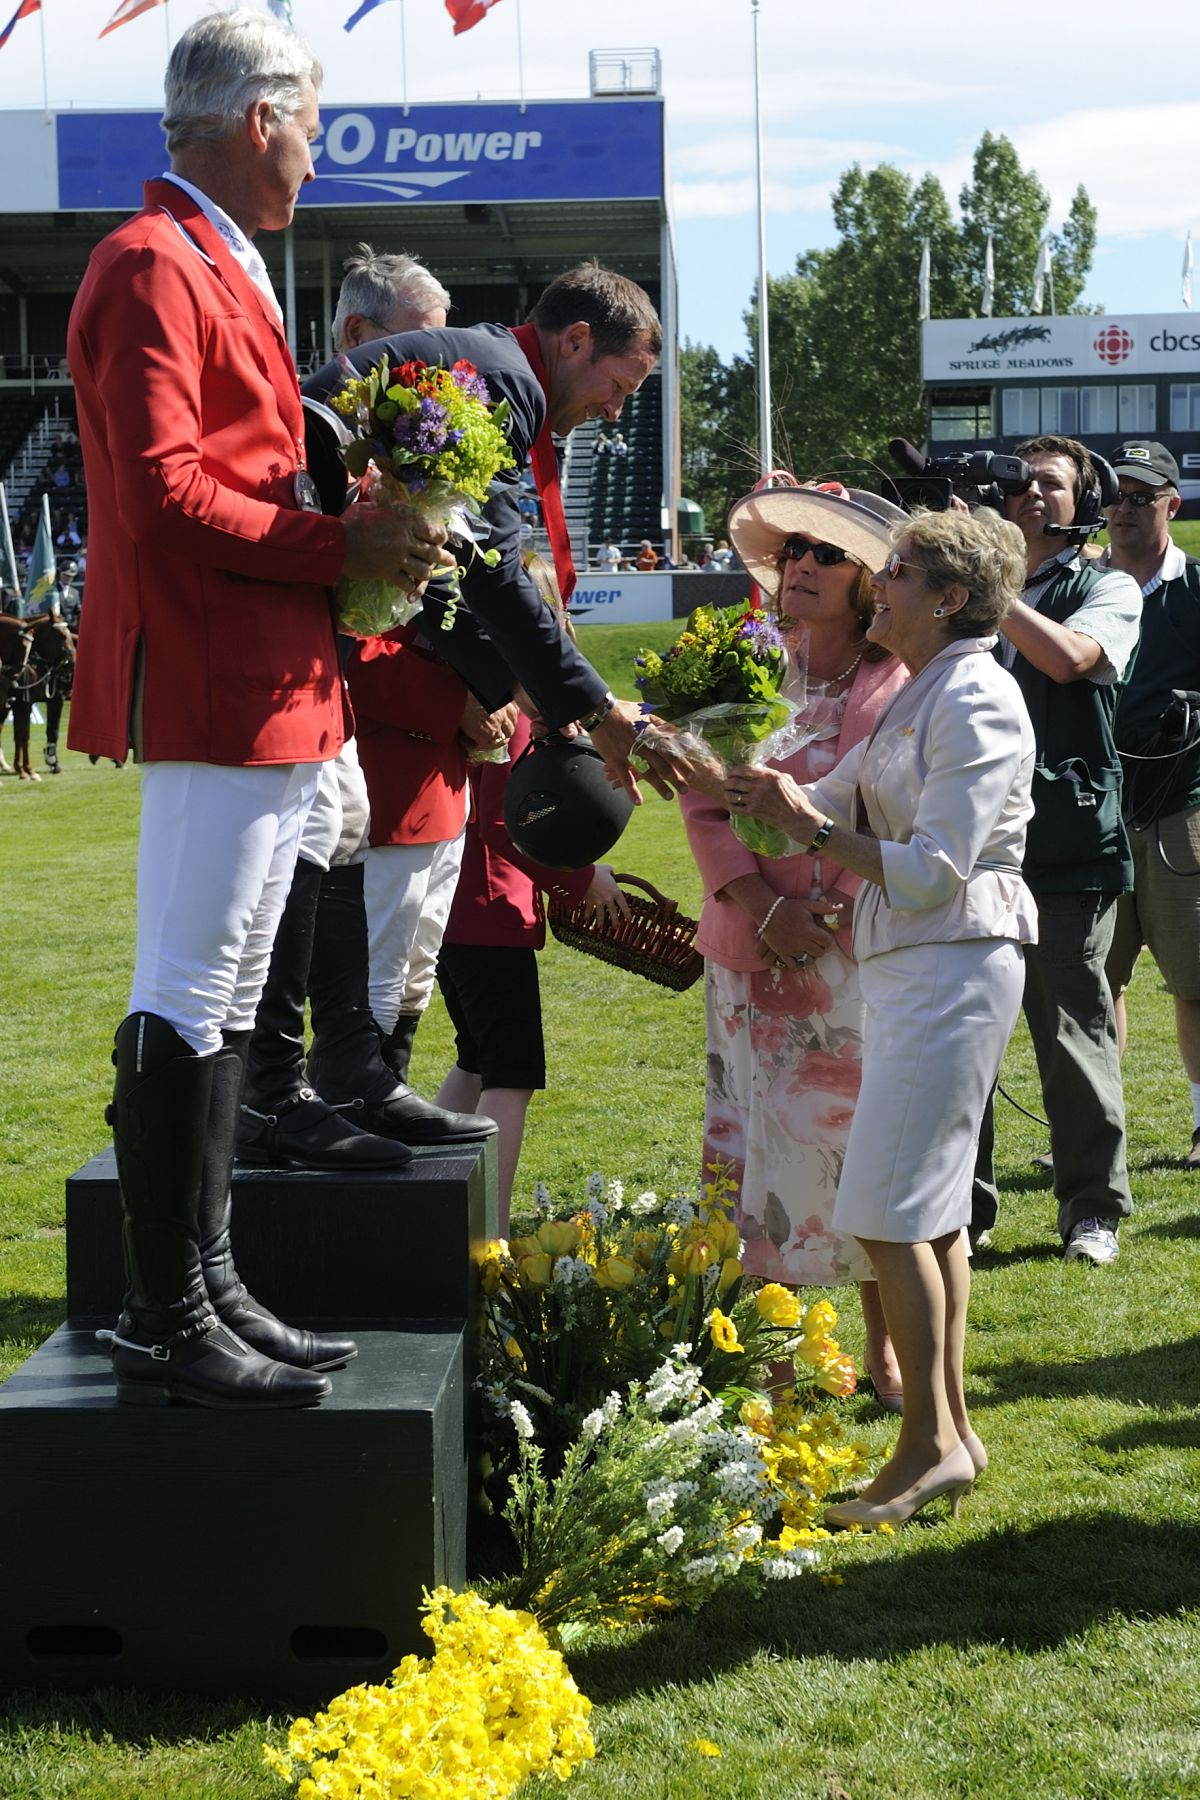 Her Excellency Sharon Johnston presented flowers to this year's winner of the Queen Elizabeth II Cup.